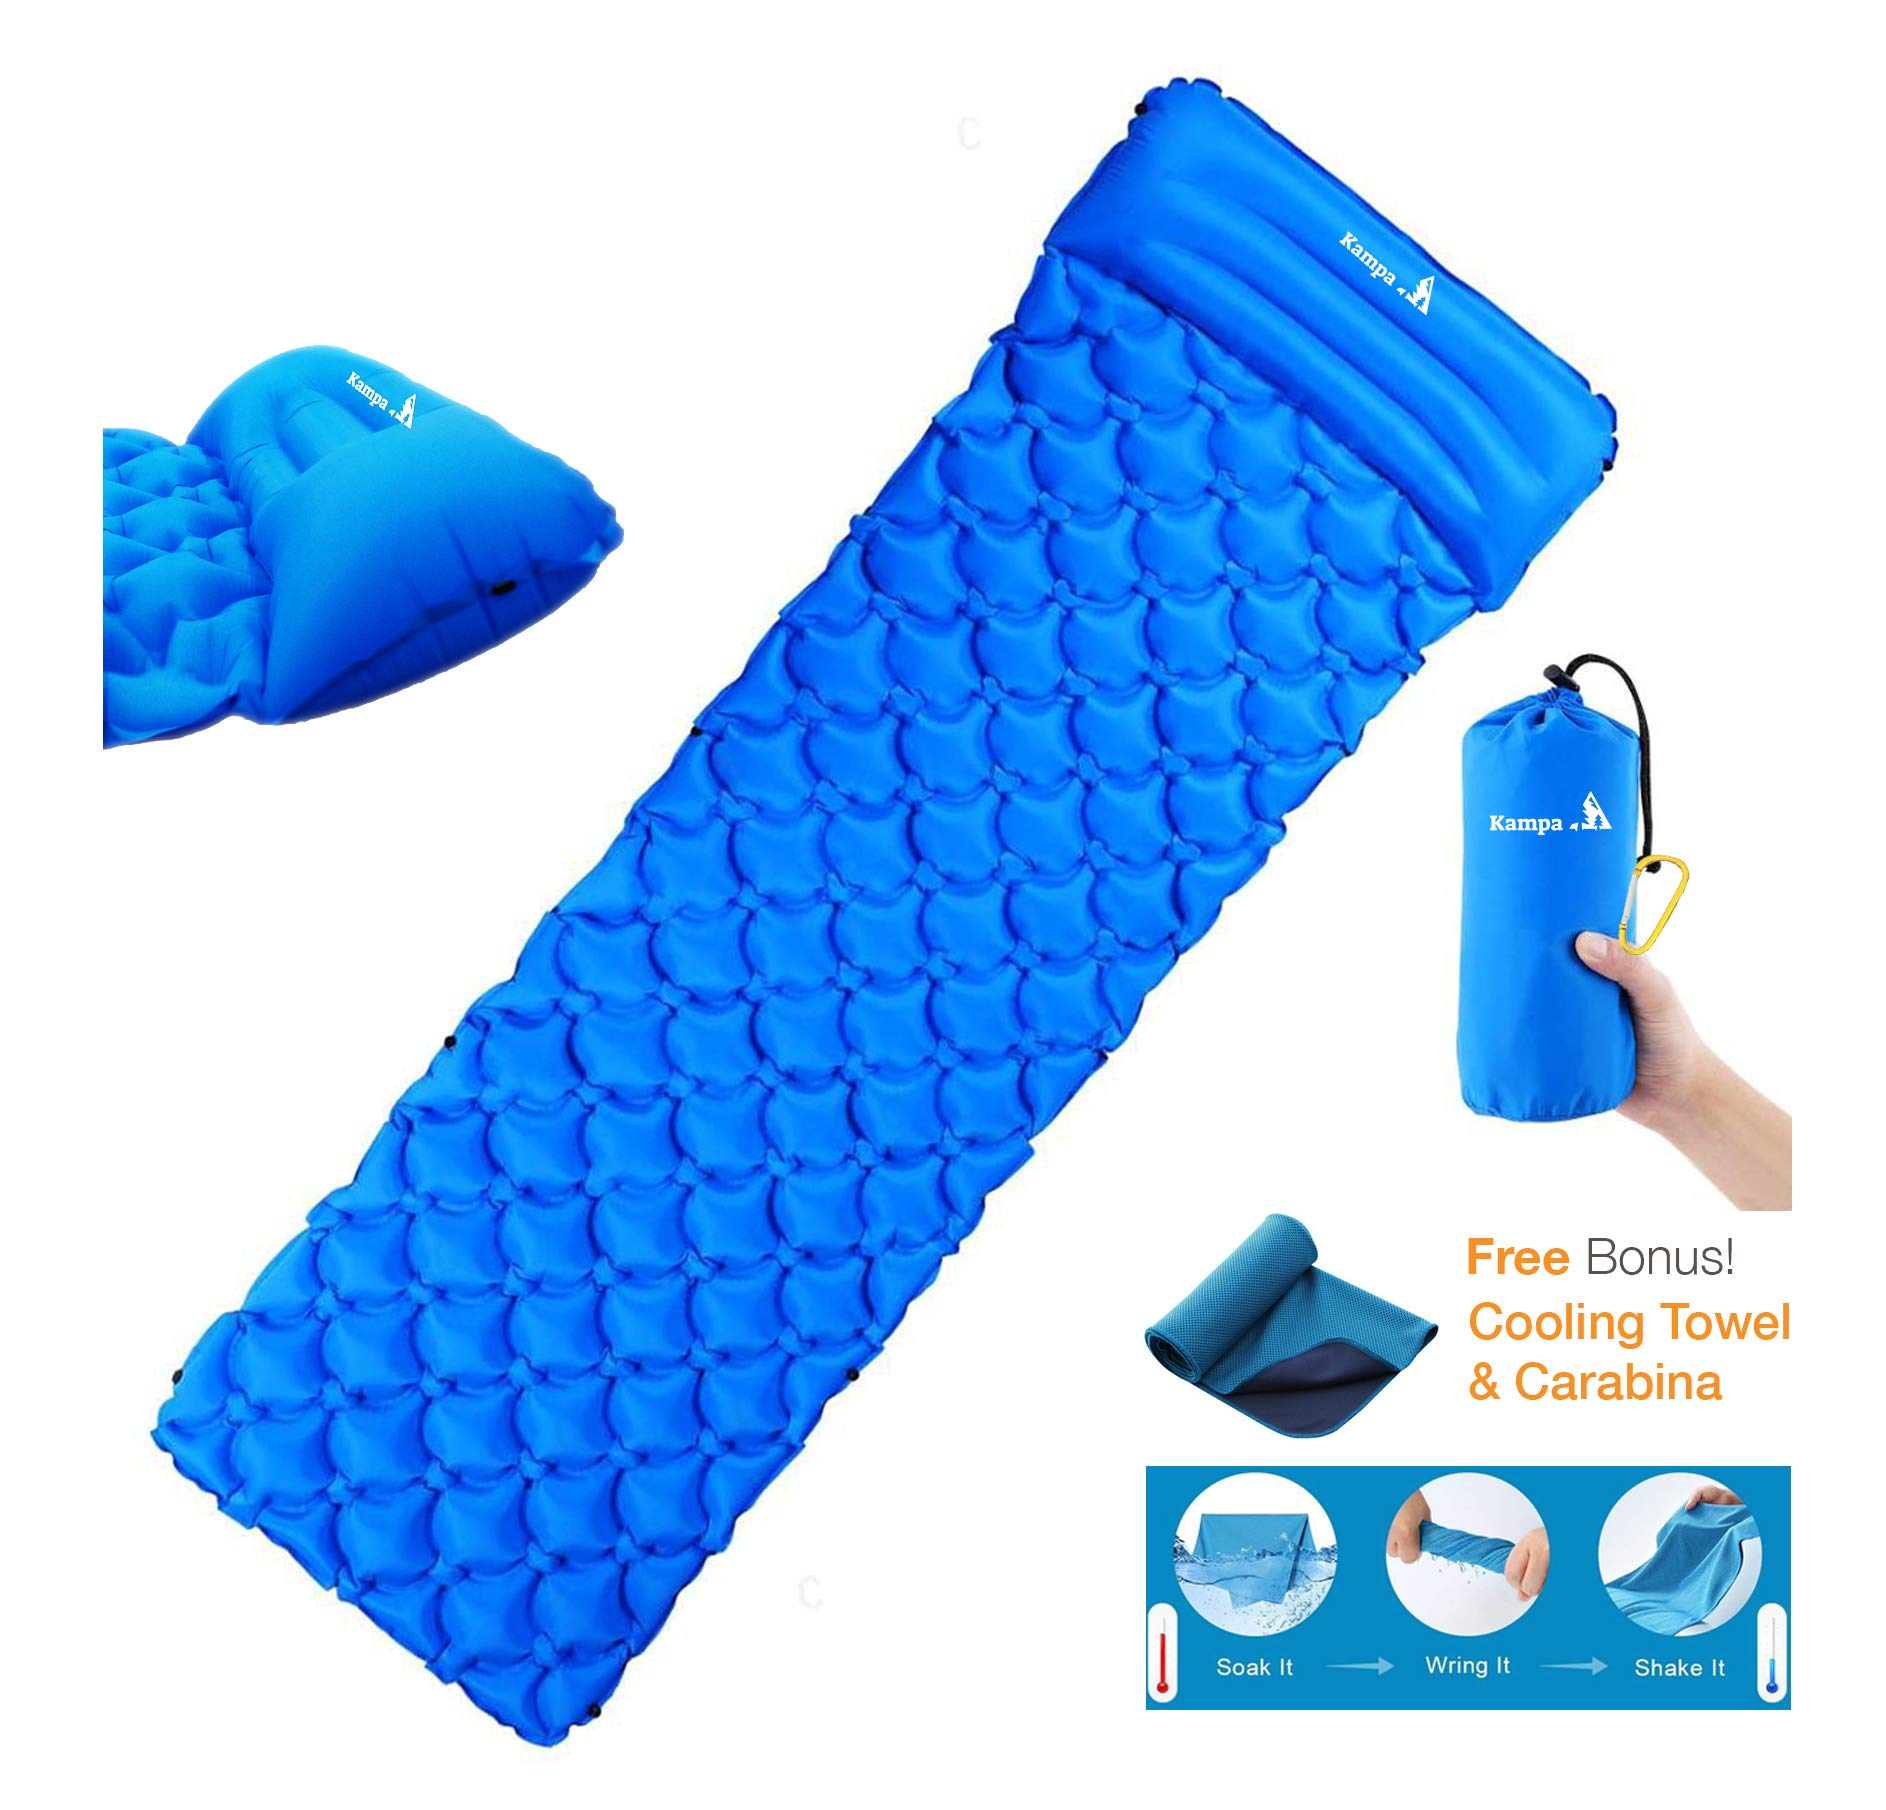 Camping Sleeping Pad, Air Mattress, Built-in Pillow,Large, Ultralight, self-Inflatable & Compact, for Backpacking, Hiking, Bonus Inclusions by Kampa